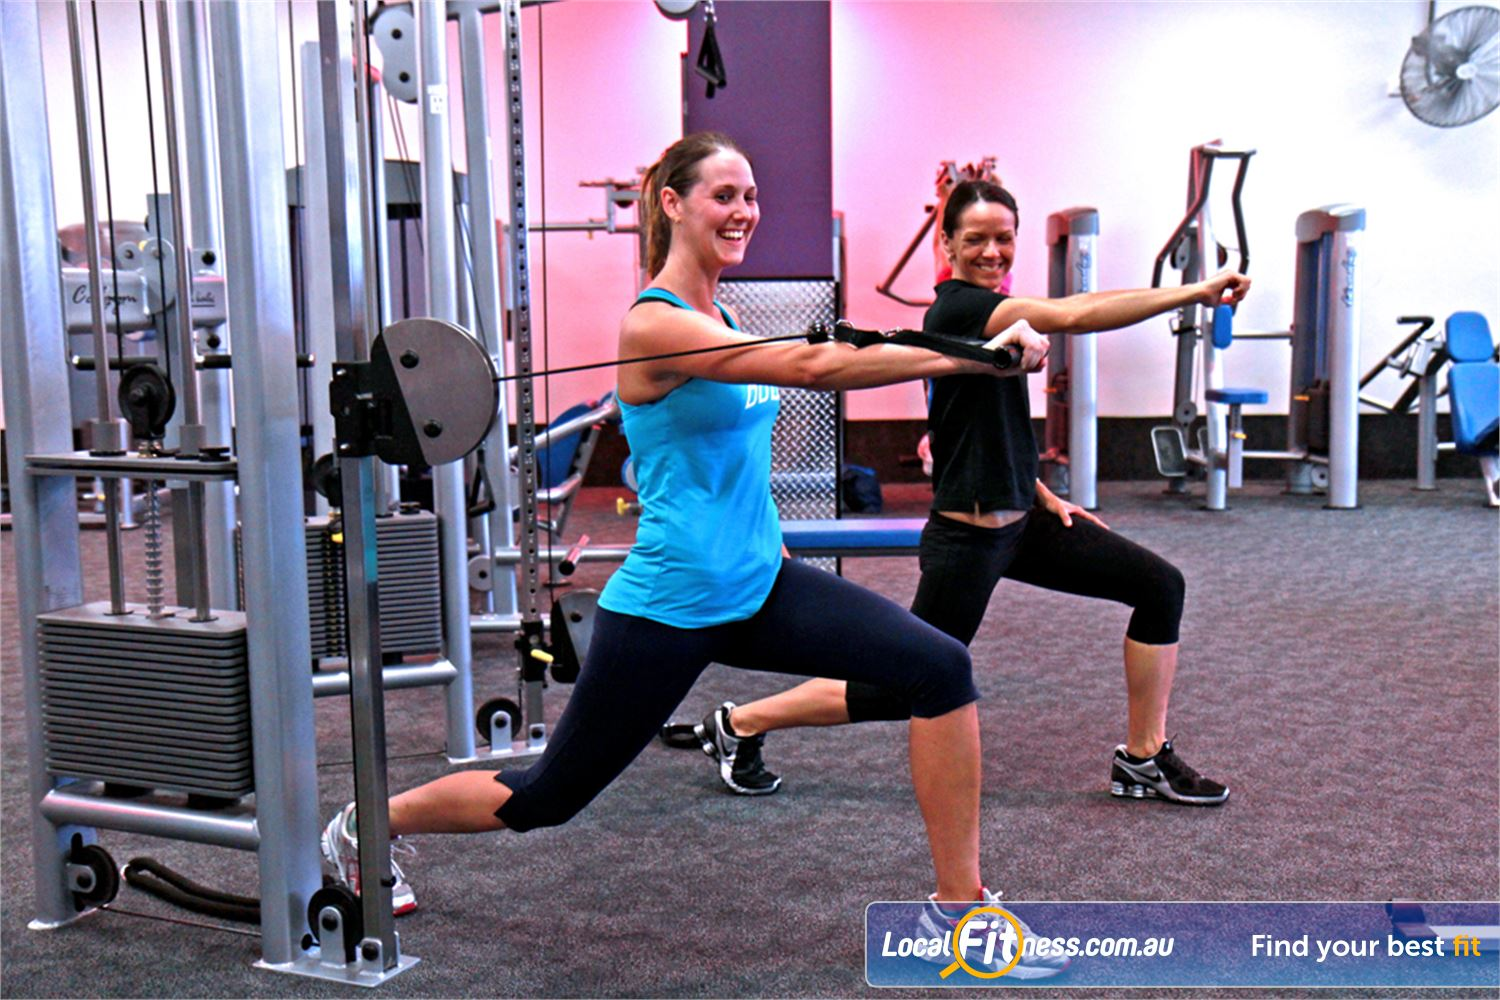 Goodlife Health Clubs Near Mount Gravatt Holland Park personal trainers can create a weight-loss programs.